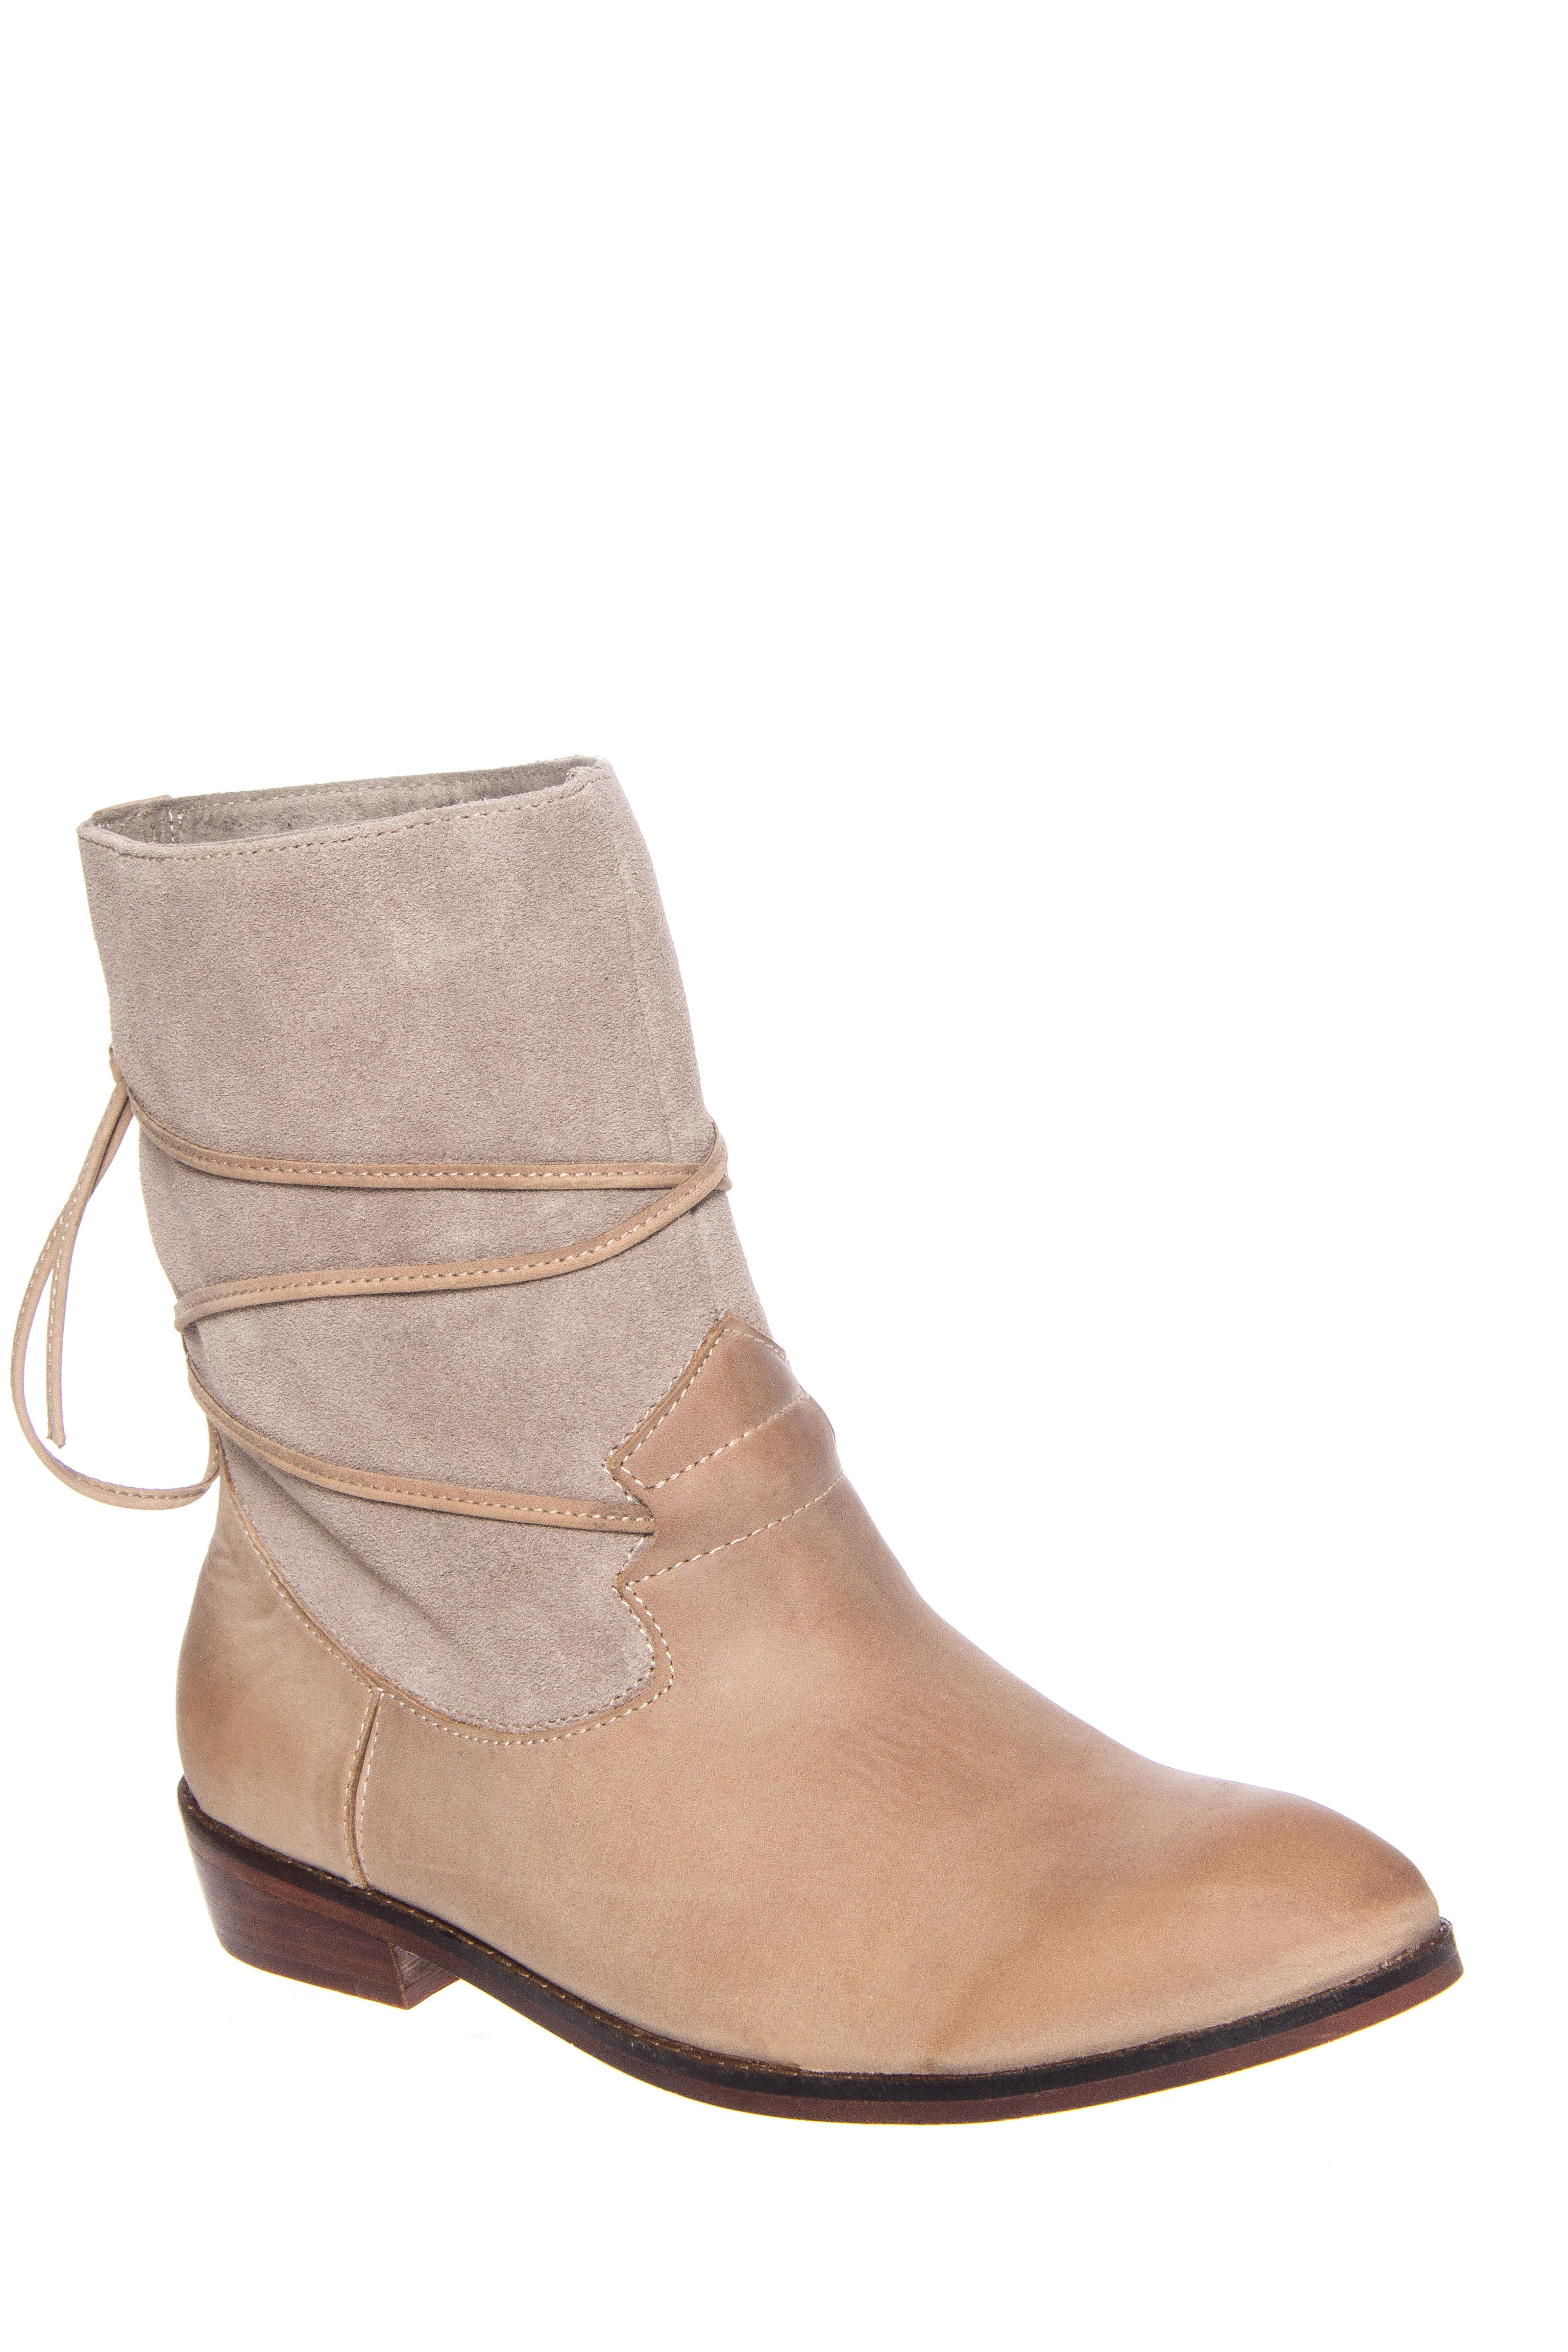 Latigo Pogo Low Heel Boot